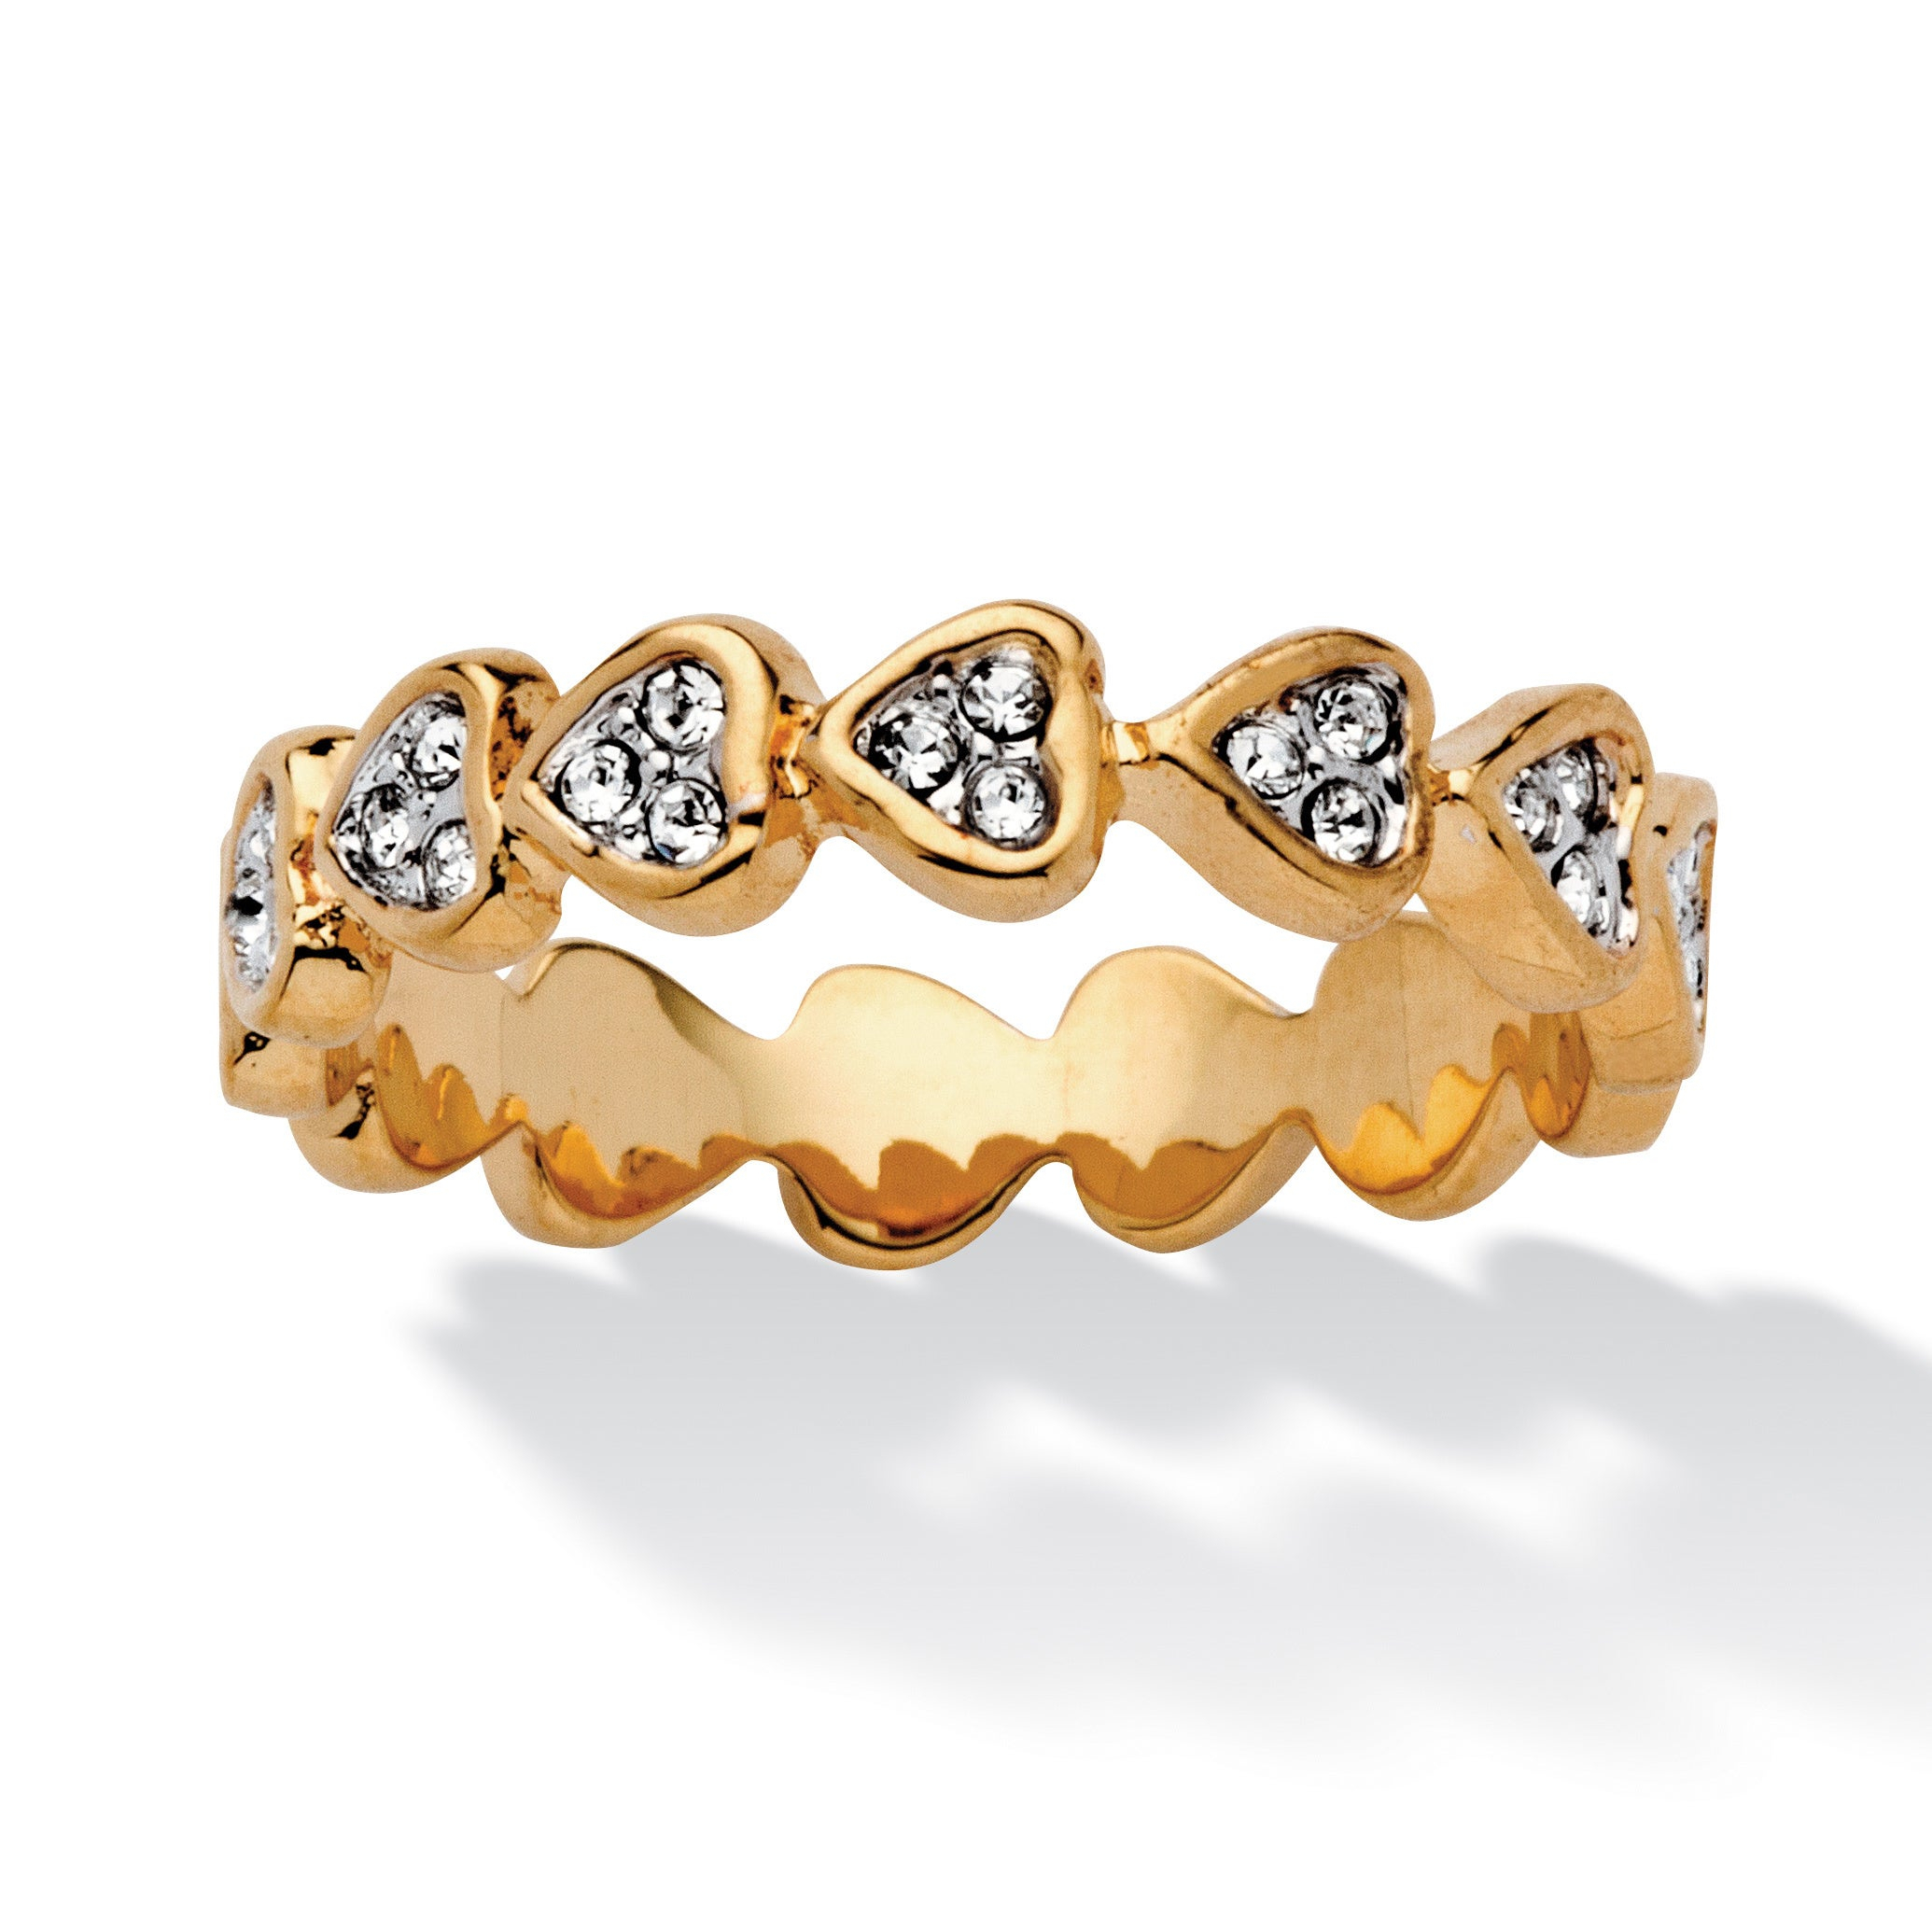 Round Crystal Yellow Gold Plated Band Of Hearts Ring Bold Fashion Throughout Most Recent Band Of Hearts Rings (Gallery 16 of 25)